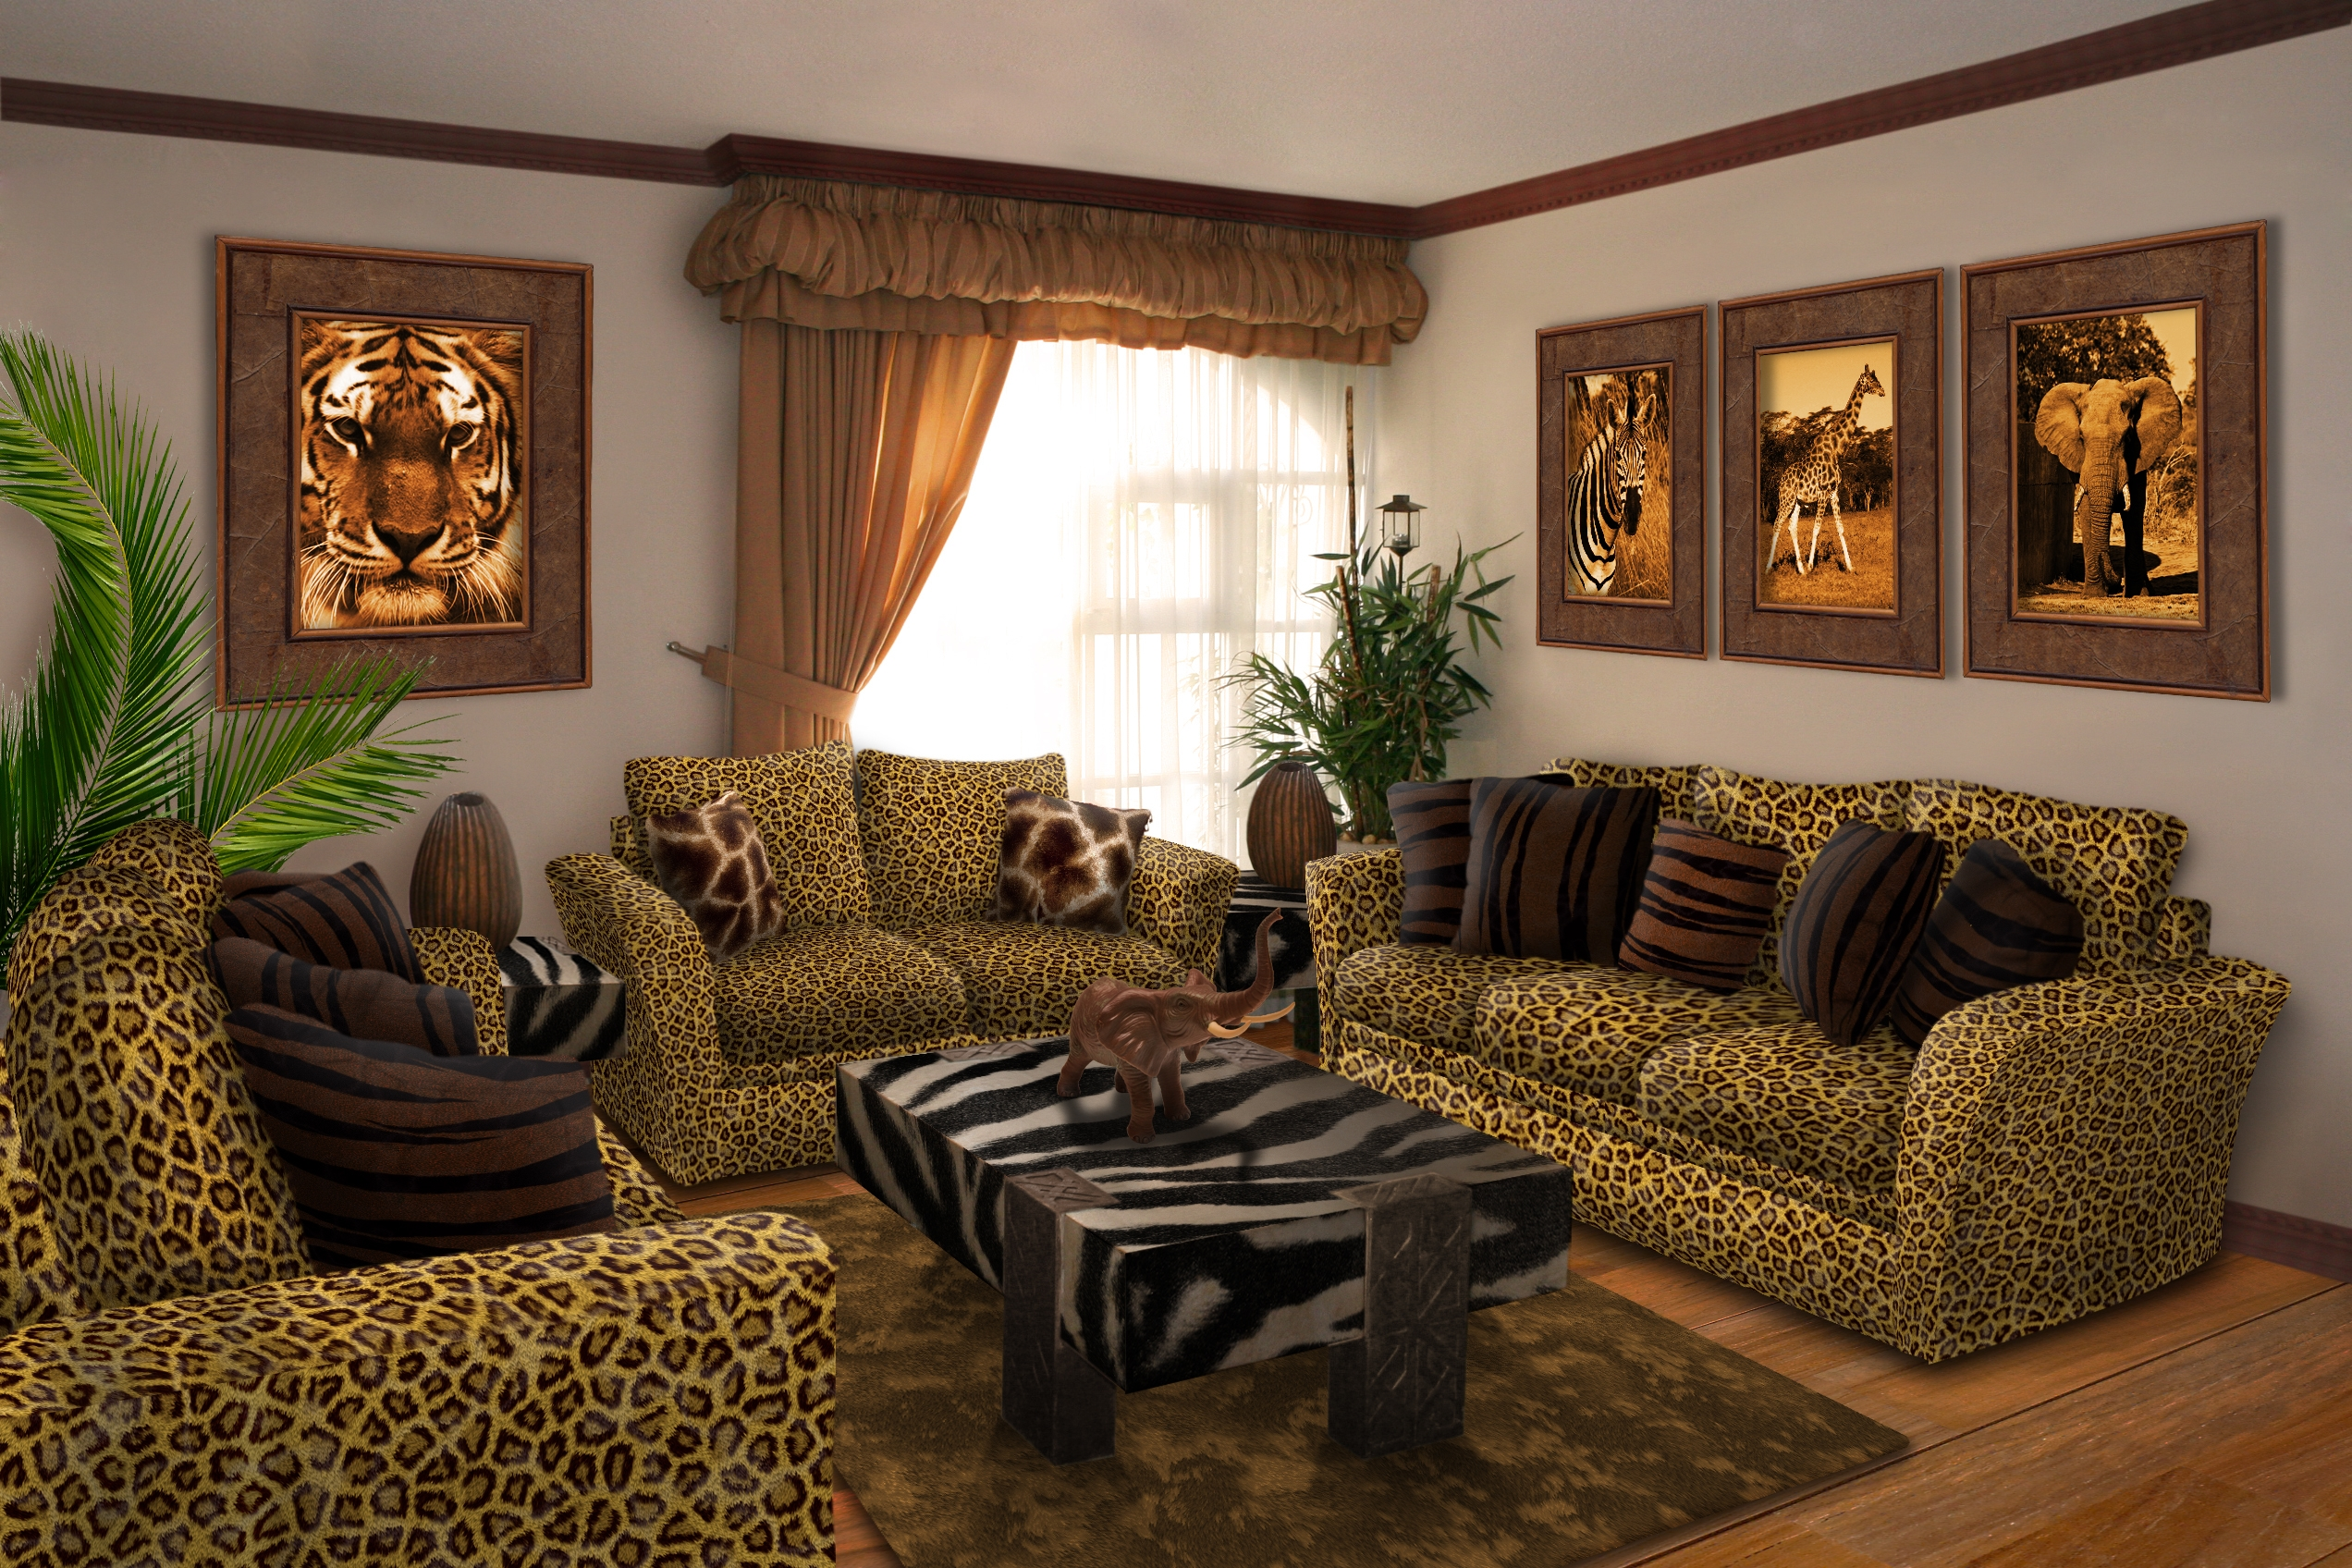 safari living room picture by andrej2249 for interior On safari living room ideas